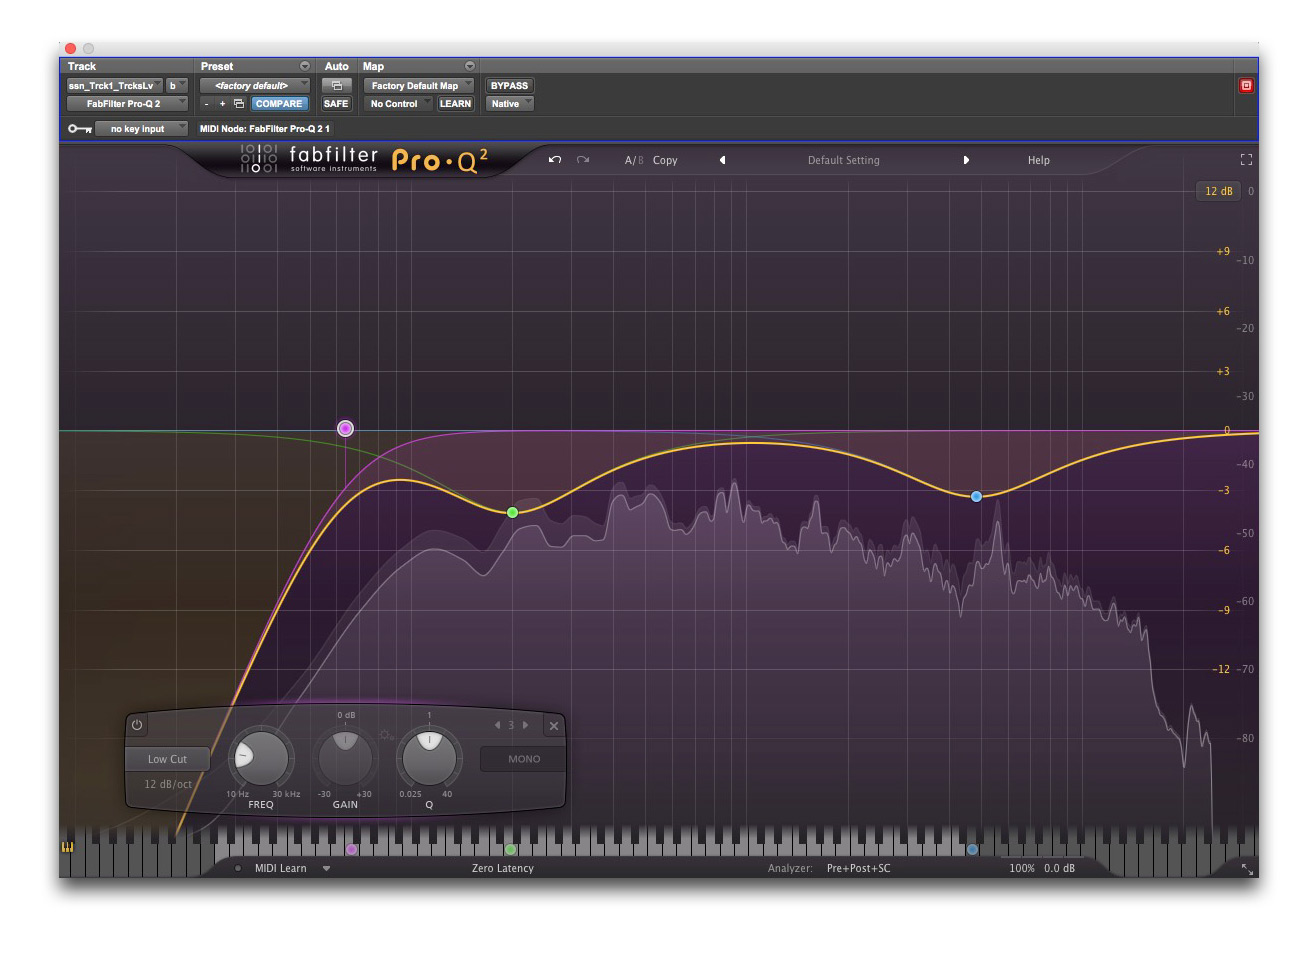 fabfilter-pro-eq2-EQ-plug-in-voice-over-recording-mixing.jpg